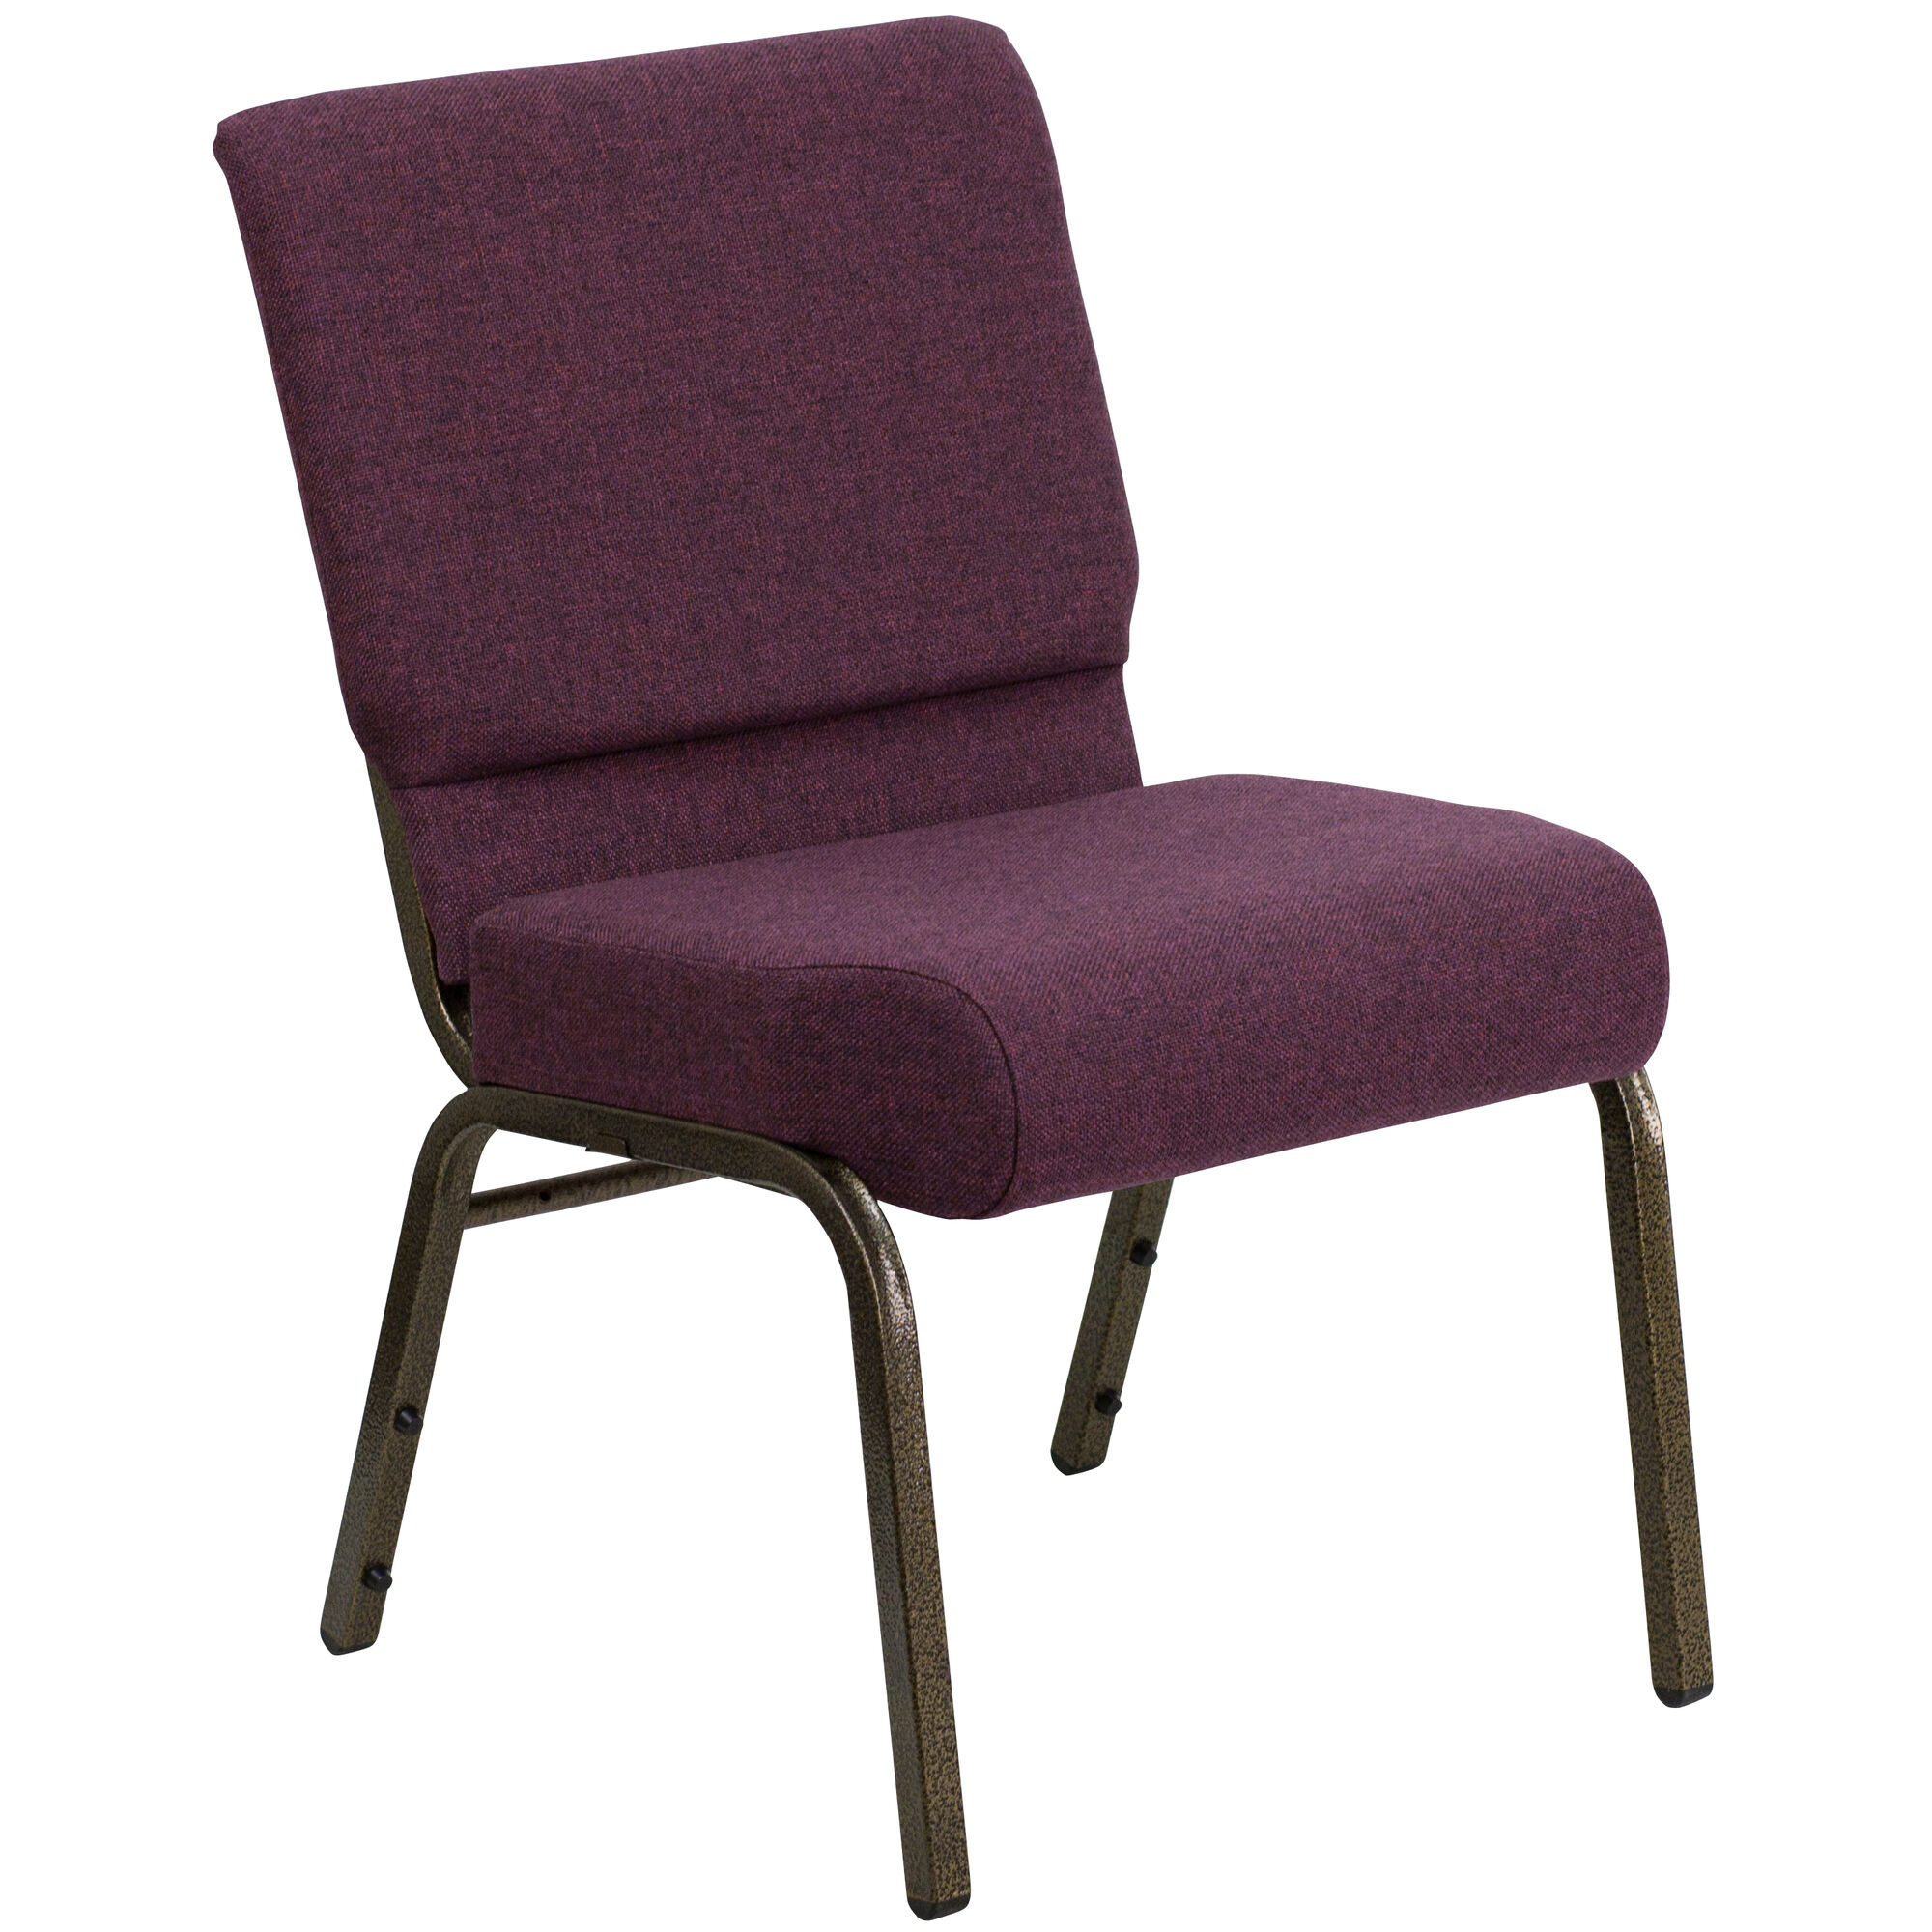 Churchchairs4less Stack Chairs Dining Chair Ac 113 Hercules Series 21